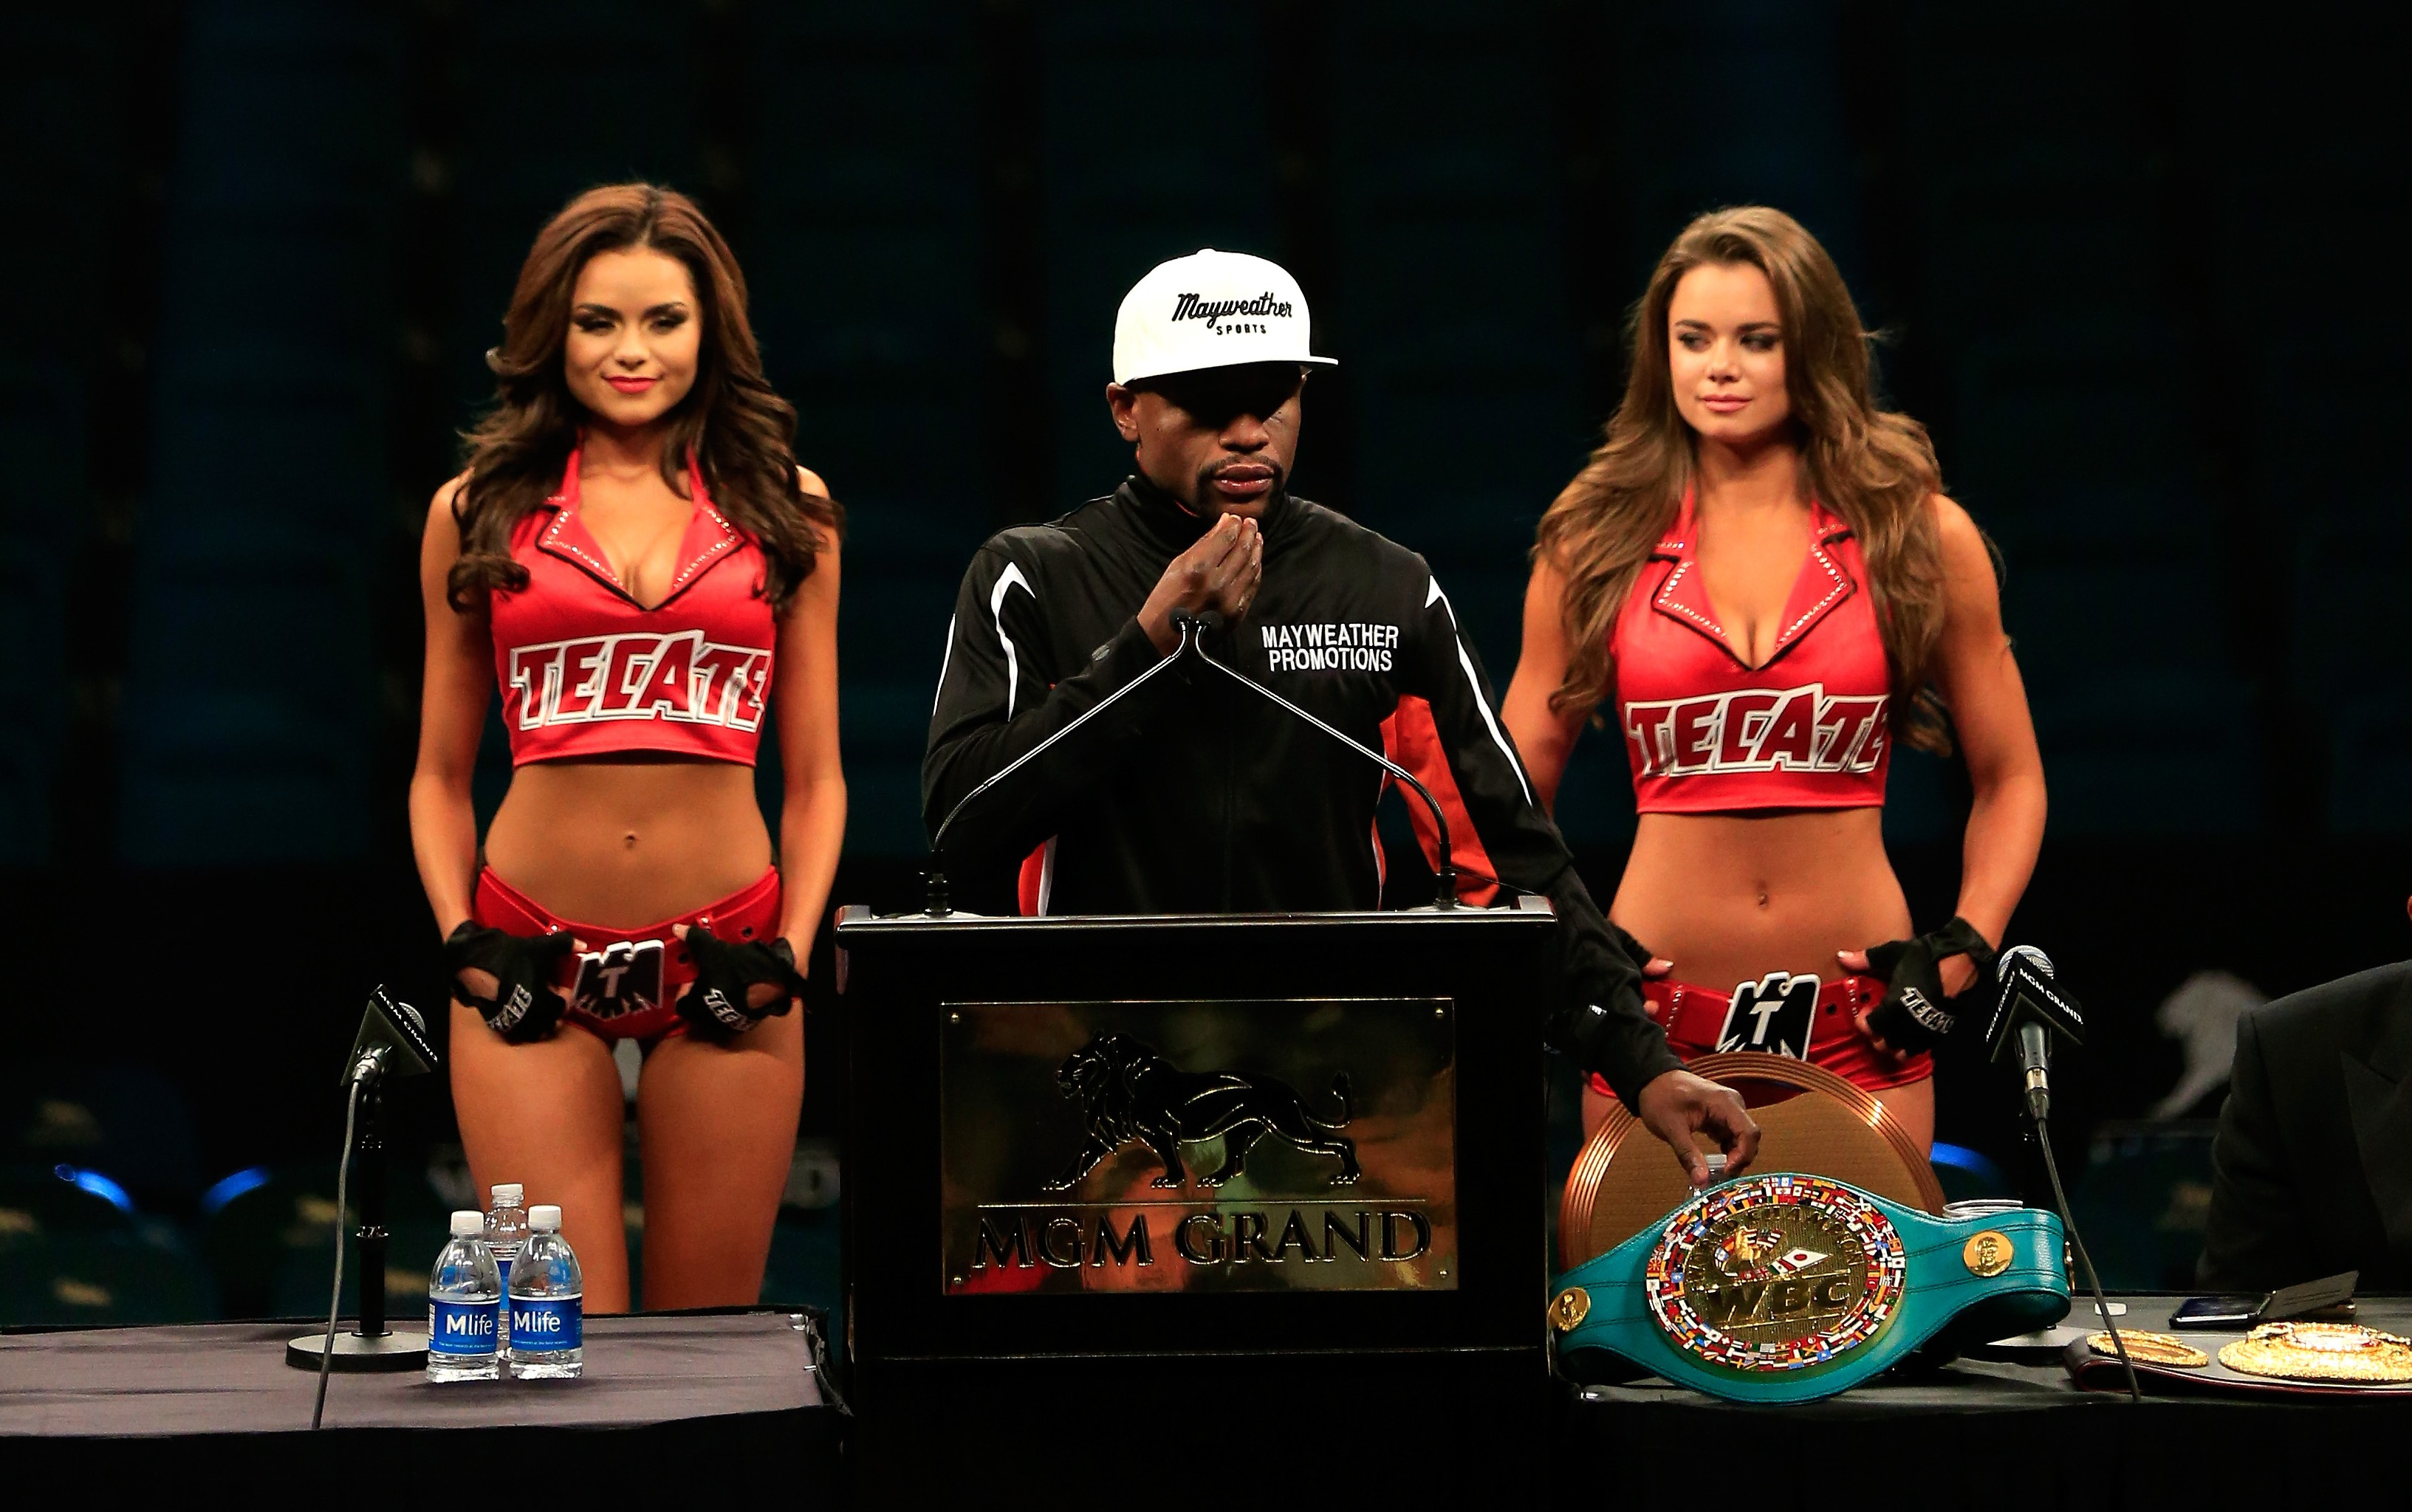 Floyd Mayweather Jr. addresses the media during the post-fight news conference after his unanimous decision victory against Manny Pacquiao in their welterweight unification championship bout on May 2, 2015 at MGM Grand Garden Arena in Las Vegas, Nevada.  Getty)